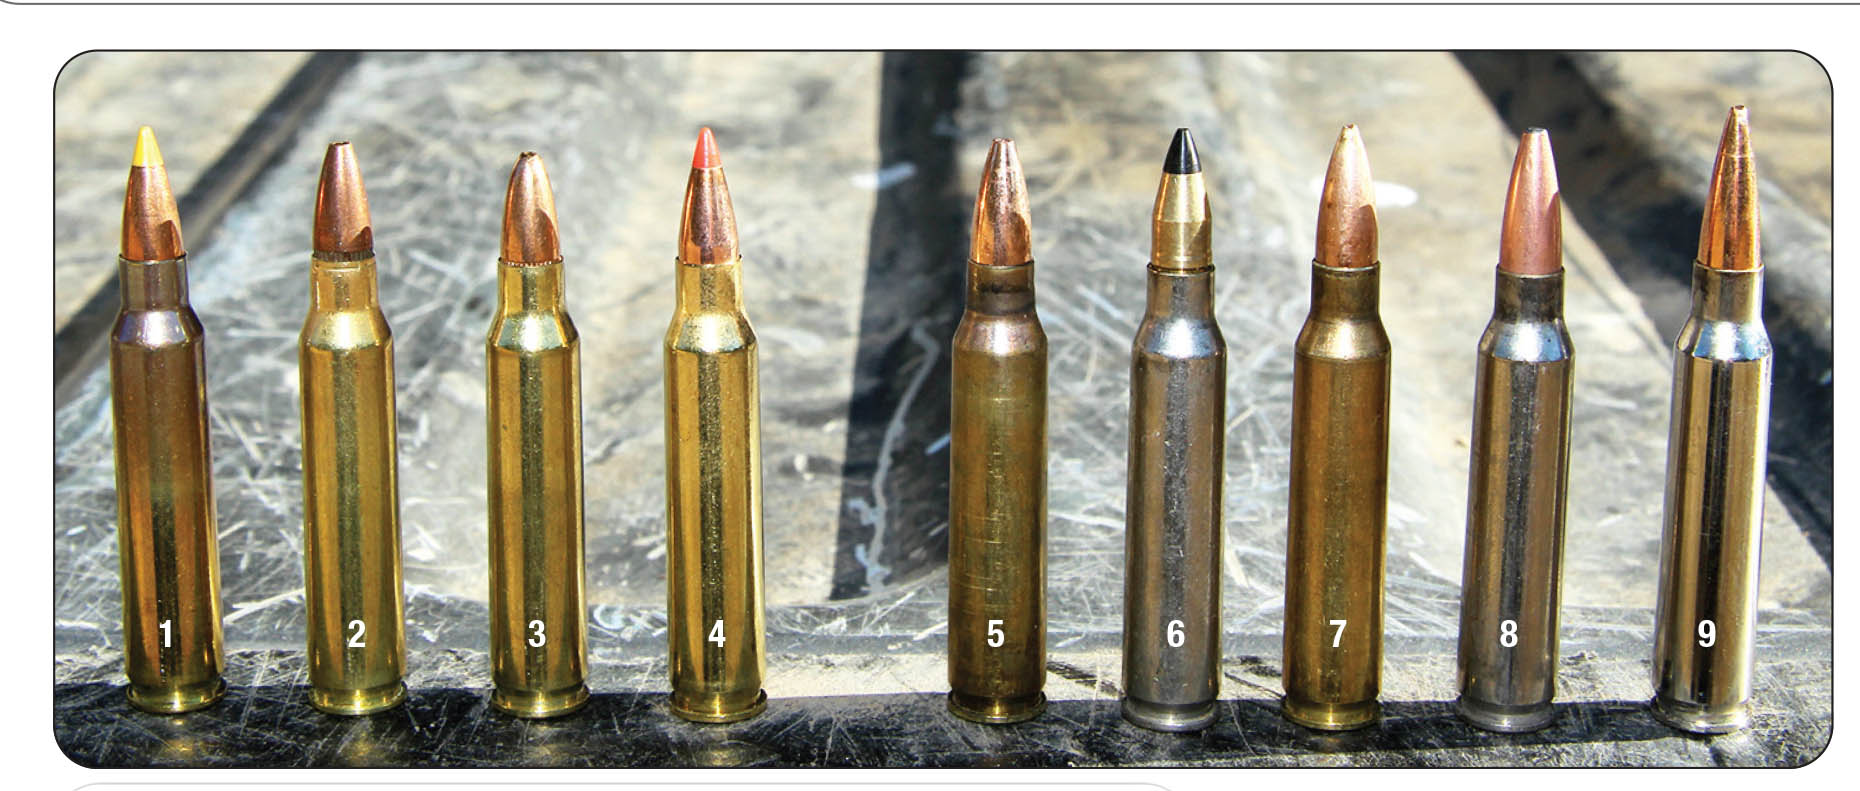 Factory ammunition tested included: 1) SIG SAUER 40-grain Varmint & Predator Tip, 2) Remington UMC 45 JHP, 3) American Eagle 50 JHP and 4) Hornady 55 V-MAX Varmint Express. Handloads included: 5) Barnes 50 Varmint Grenade, 6) Cutting Edge ESP Raptor, 7) Rocky Mountain Reloading 69 3-Gun Hunter, 8) Speer 75 Gold Tip and 9) Berger 90-grain VLD Target.